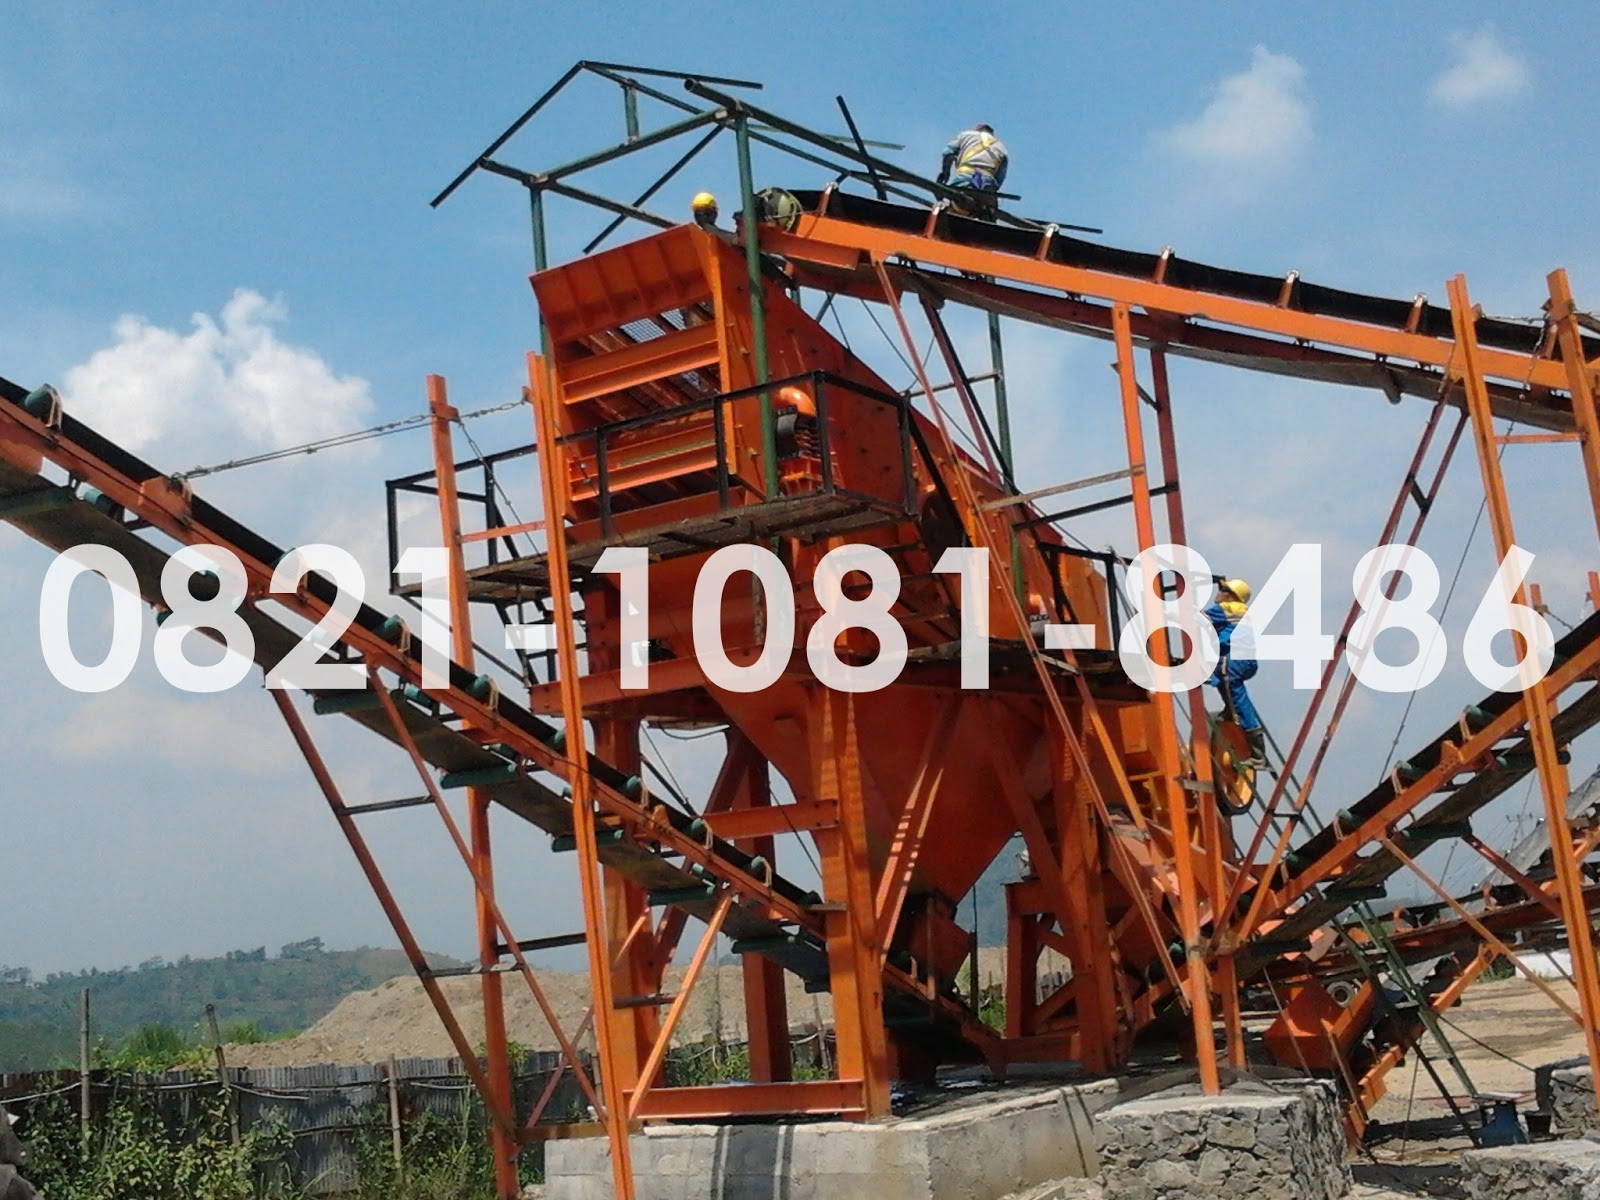 Jual Stone Crusher 70 90 Ton Per Jam Jaw To Hand Pipe Bender Krisbow 3 8 7 8in Kw1500520 Vibrating Screen Yms 514